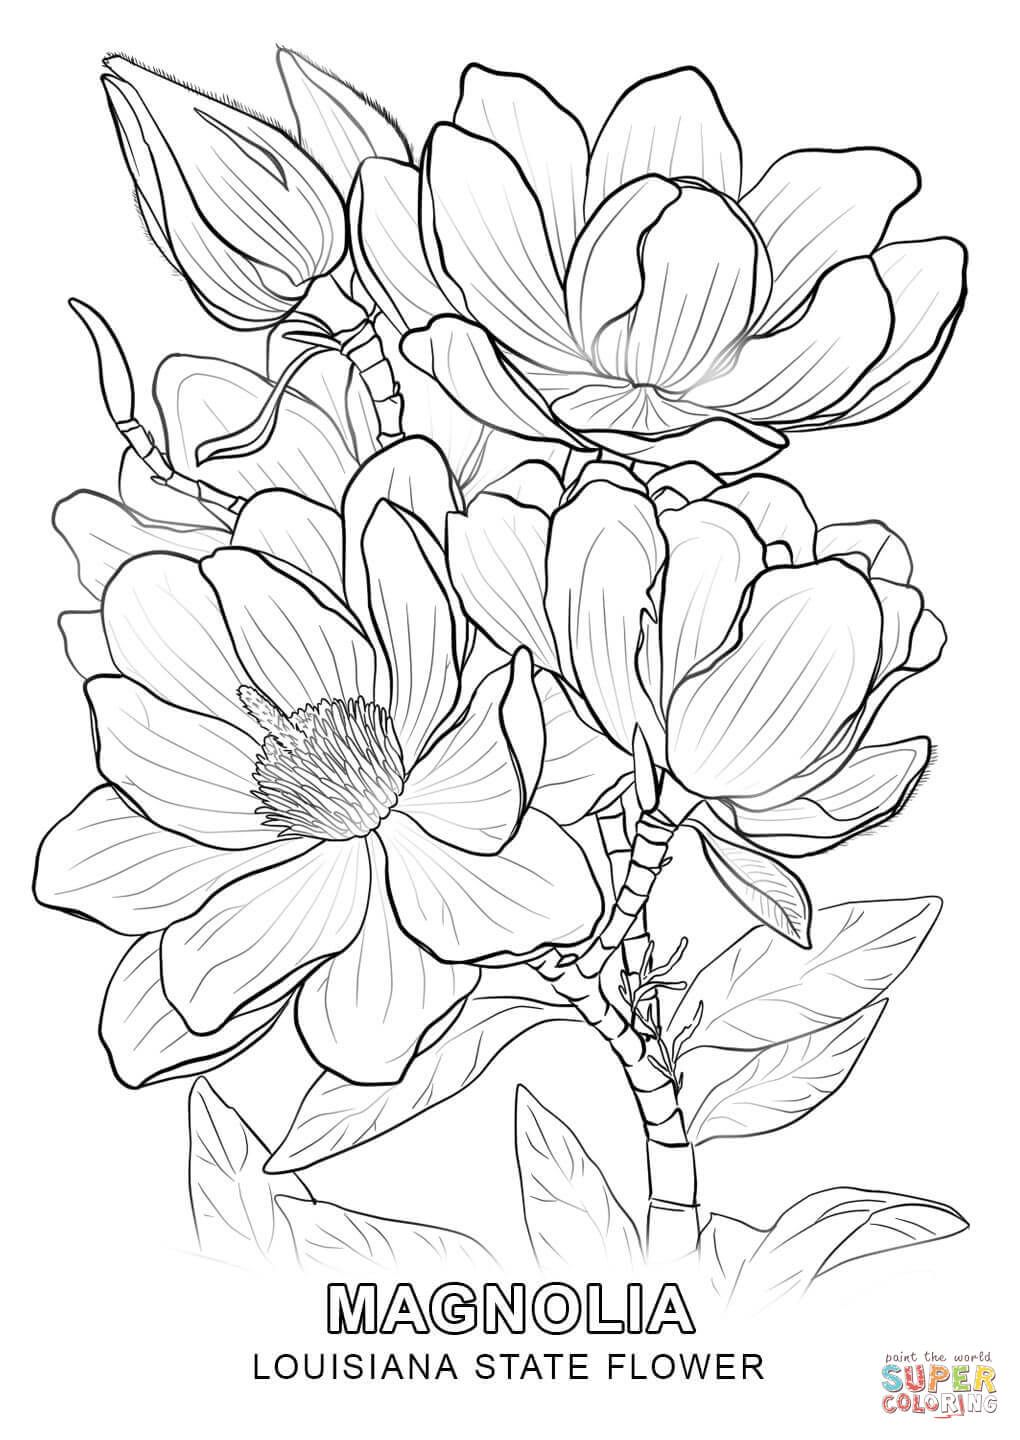 Louisiana State Flower coloring page | Free Printable Coloring Pages ...